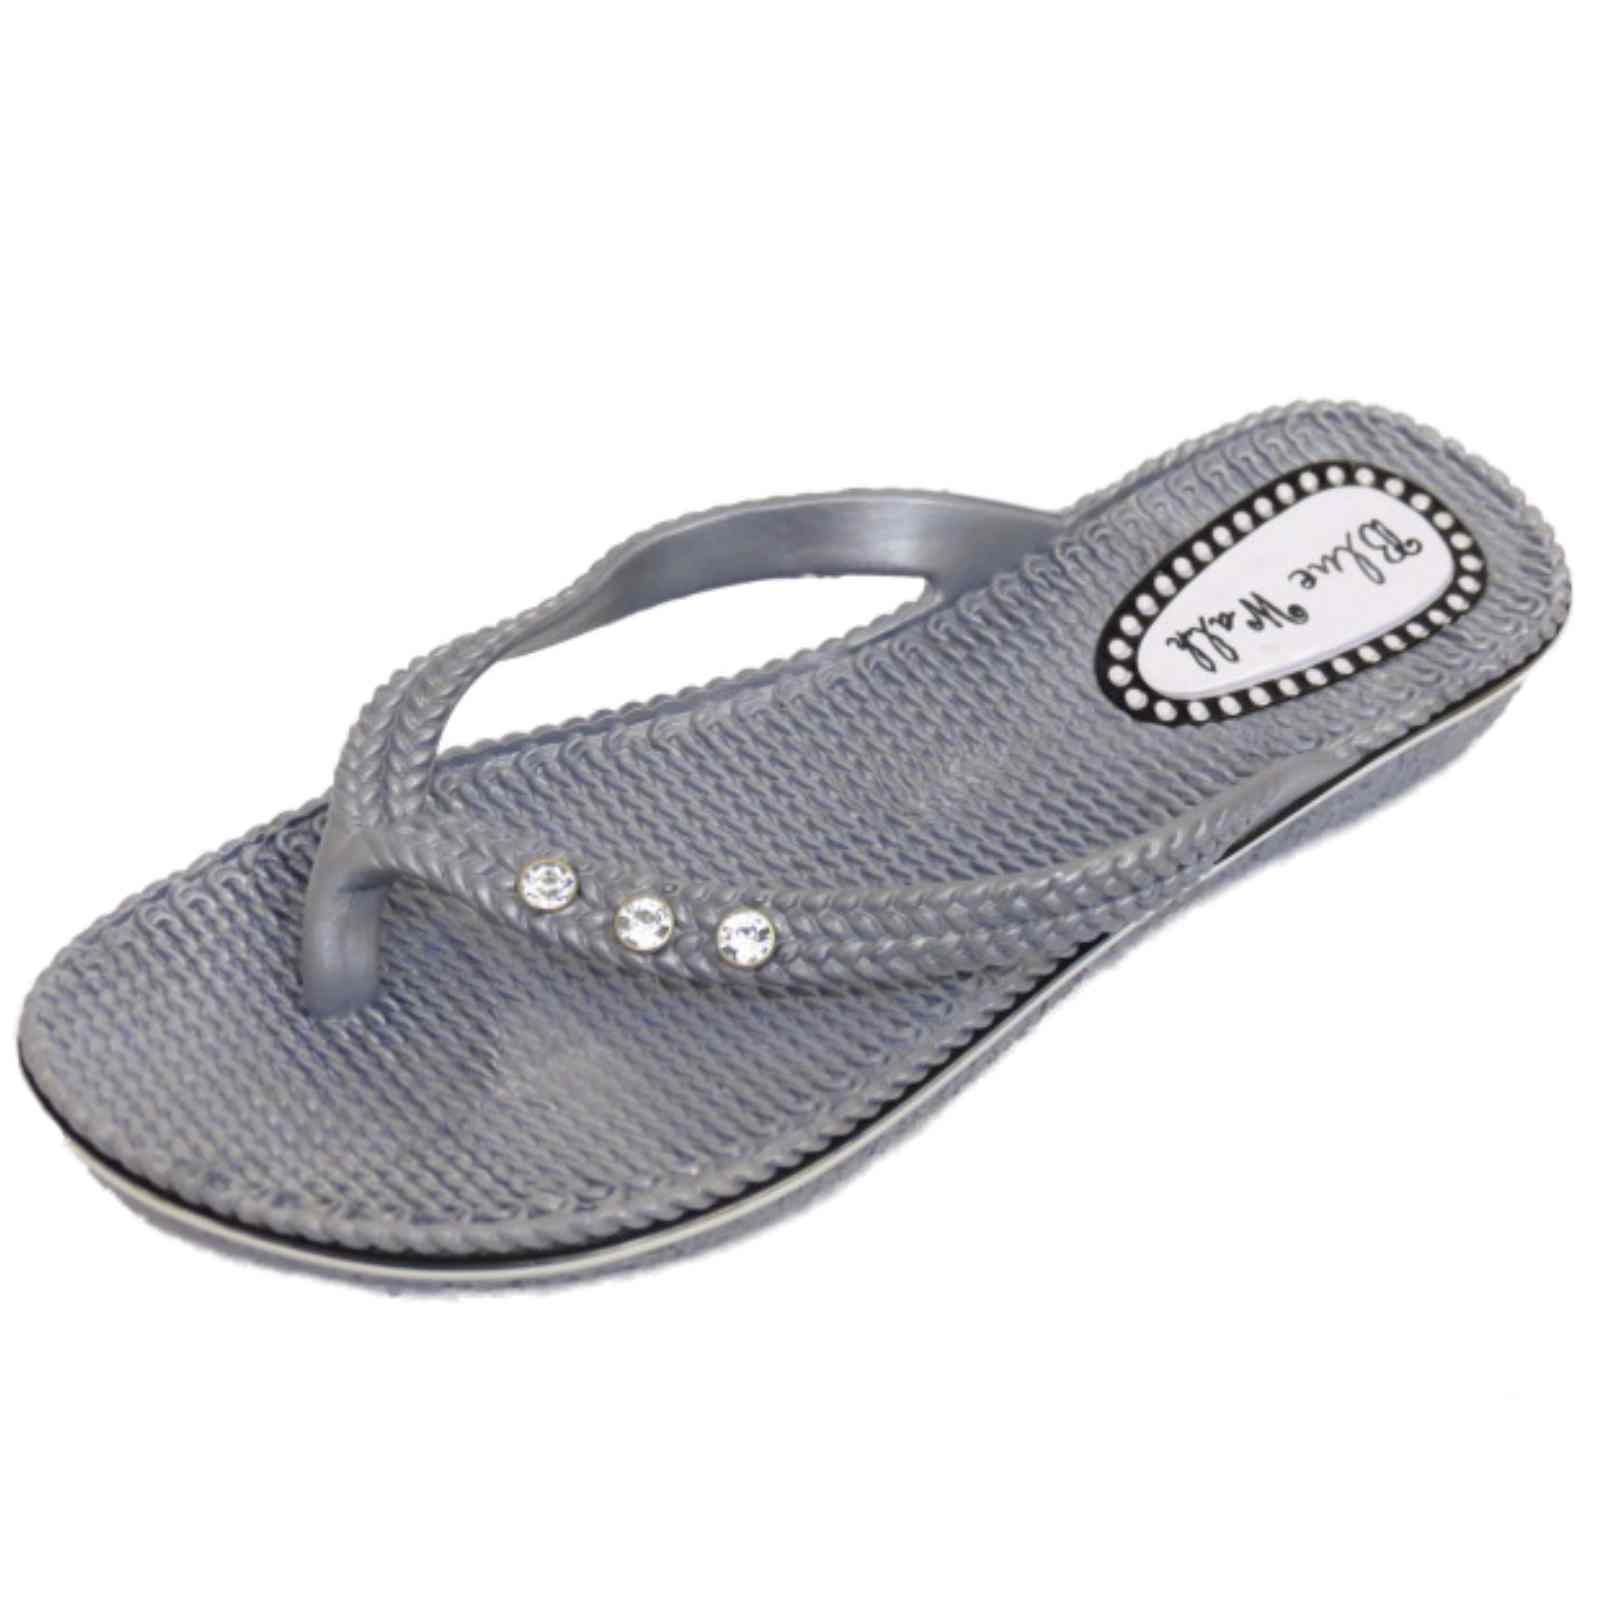 WOMENS FLAT SILVER TOE-POST FLIP-FLOP BEACH SUMMER JELLY ...